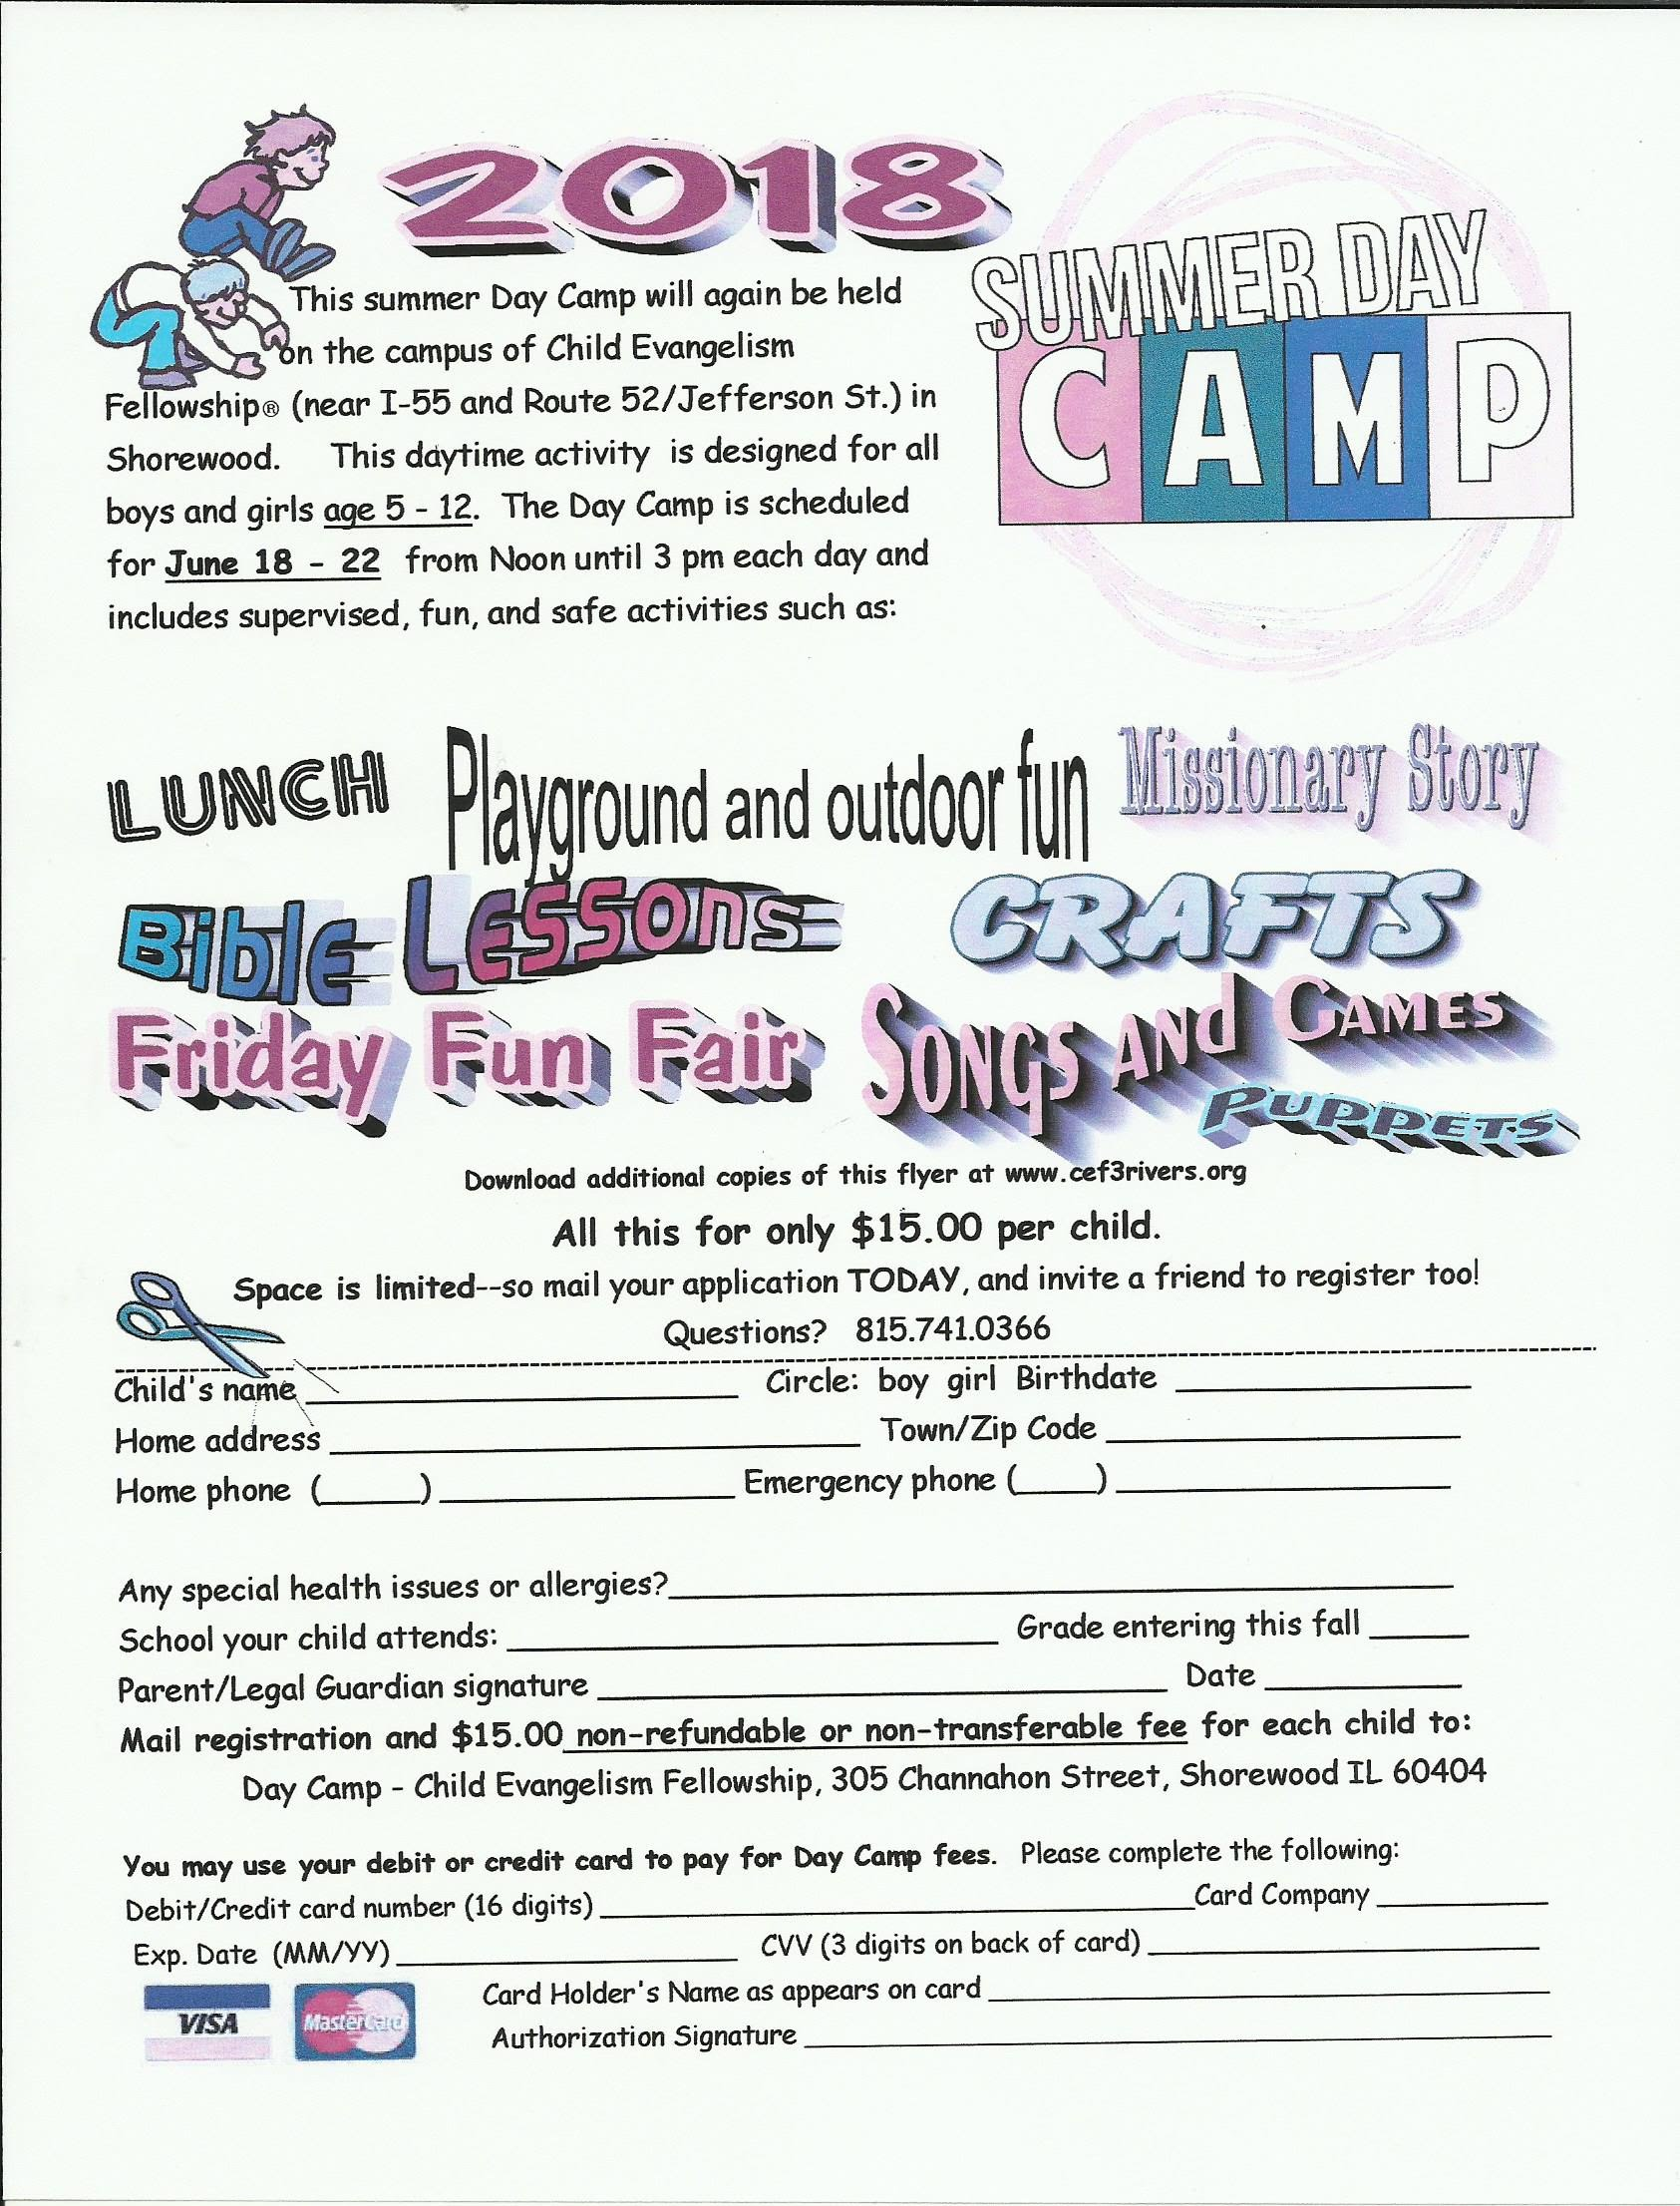 https://sites.google.com/a/cef-will.org/public/important-documents/Day%20Camp%20Flyer.pdf?attredirects=0&d=1